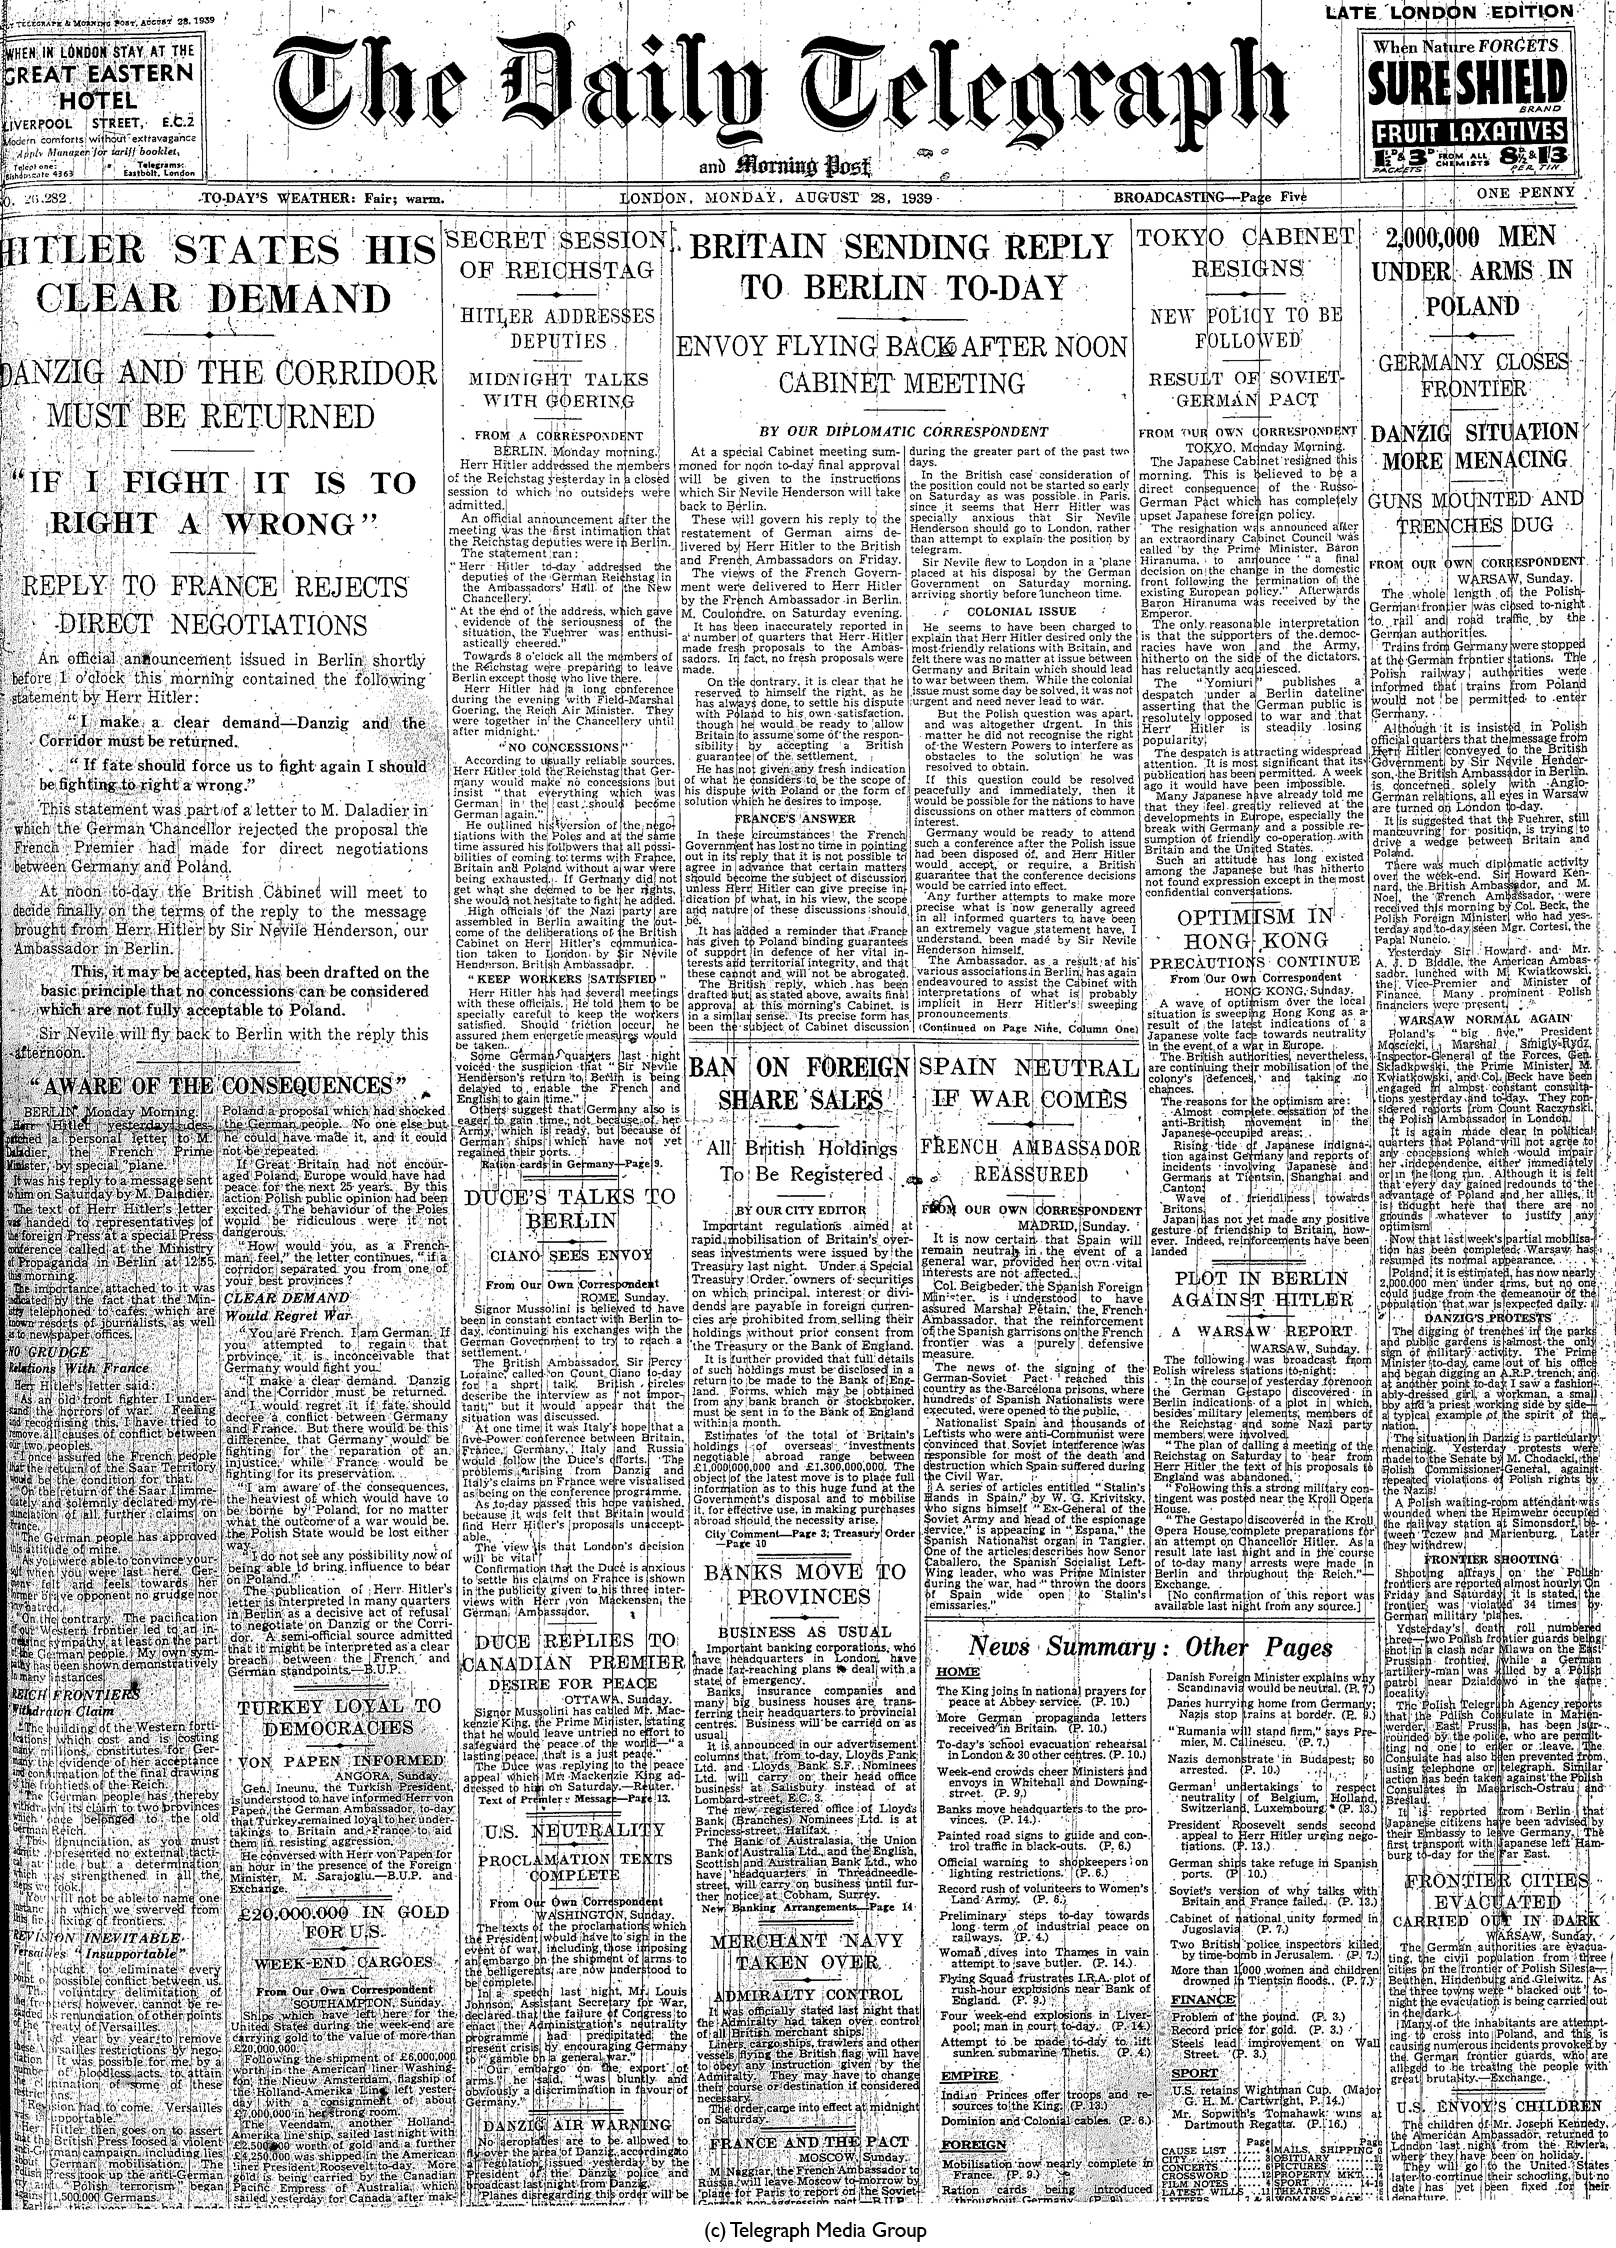 Daily Telegraph 28-8-39 Page 1